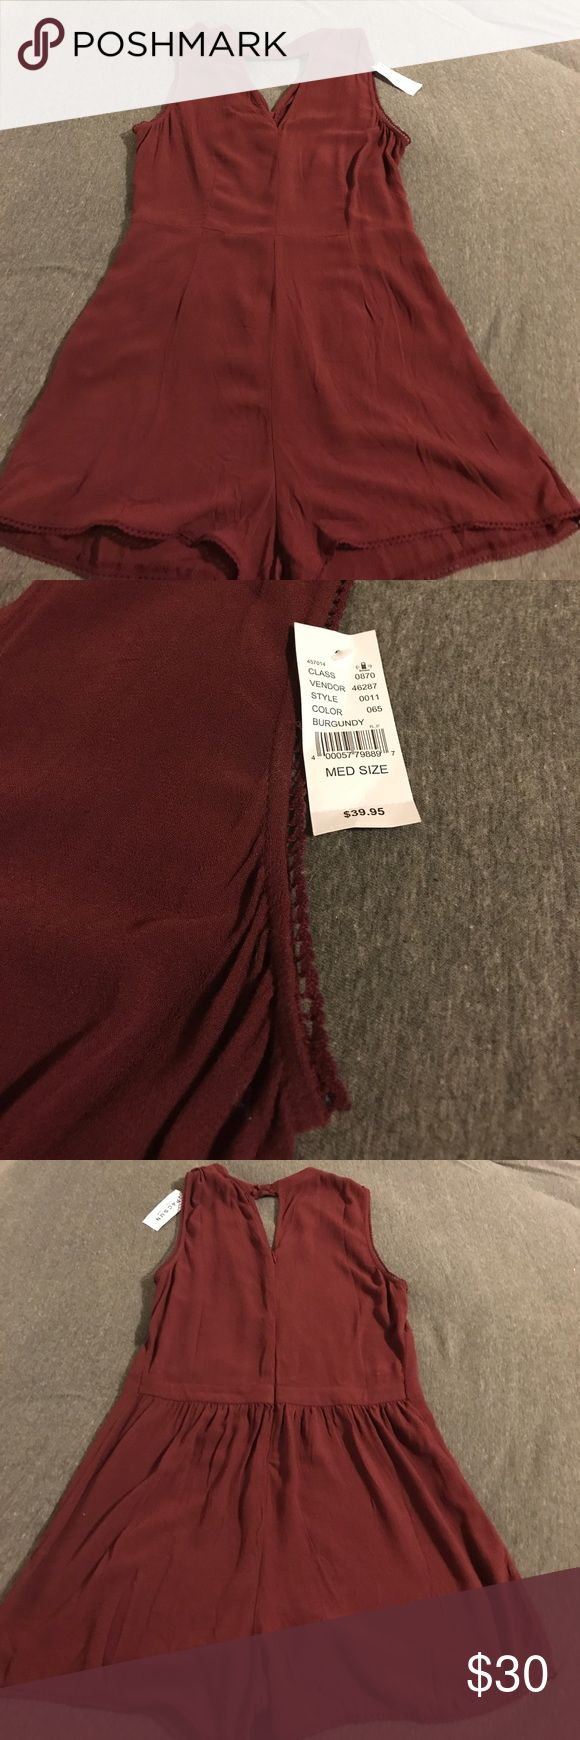 Pacsun Kendall&Kylie Romper w Choker Neckline This is a brand new never worn romper from PacSun with the tags still on. It's a dark red/maroon color with a high neck and choker neckline and a cutout near the chest. I around the edges there's a pretty sewn detail. Zips up the back and buttons on top. Really pretty- can be worn casually or dress up for any event. (Not a set price, send me your offers. I accept bundling as well!) PacSun Dresses